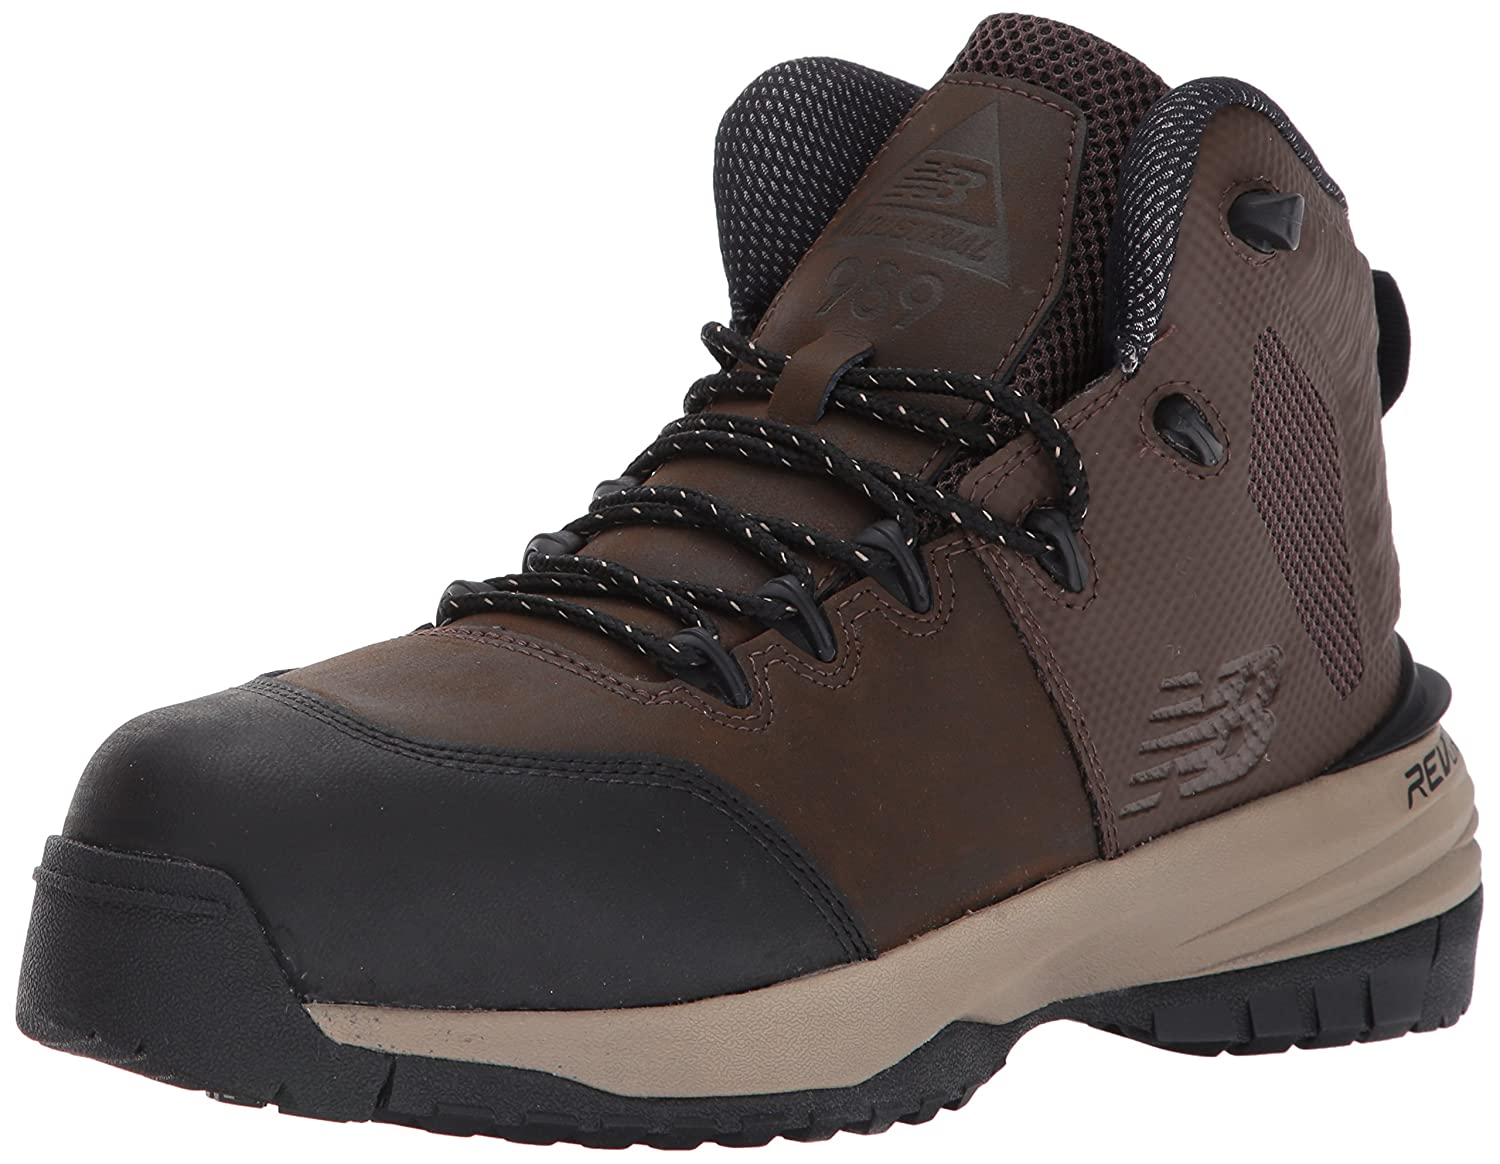 New Balance Men's 989V1 Work Training Shoe B01MQLSHAS 14 D(M) US|Brown